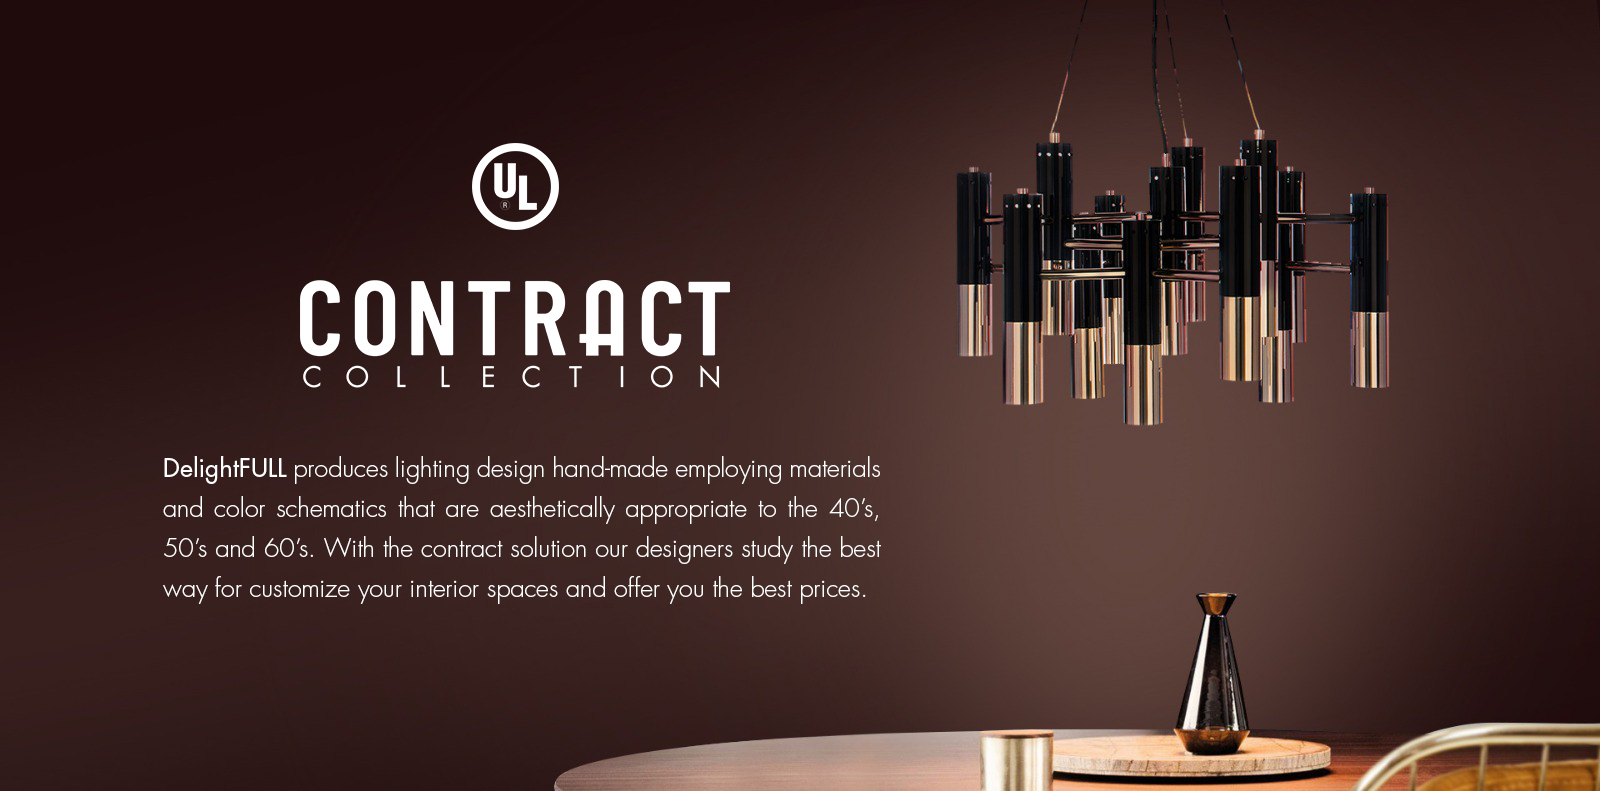 DelightFULL produces lighting design hand-made employing materials and color schematics that are aesthetically appropriate to the 40's, 50's and 60's.   With the contract solution our designers study the best way for customize your interior spaces and offer you the best prices.